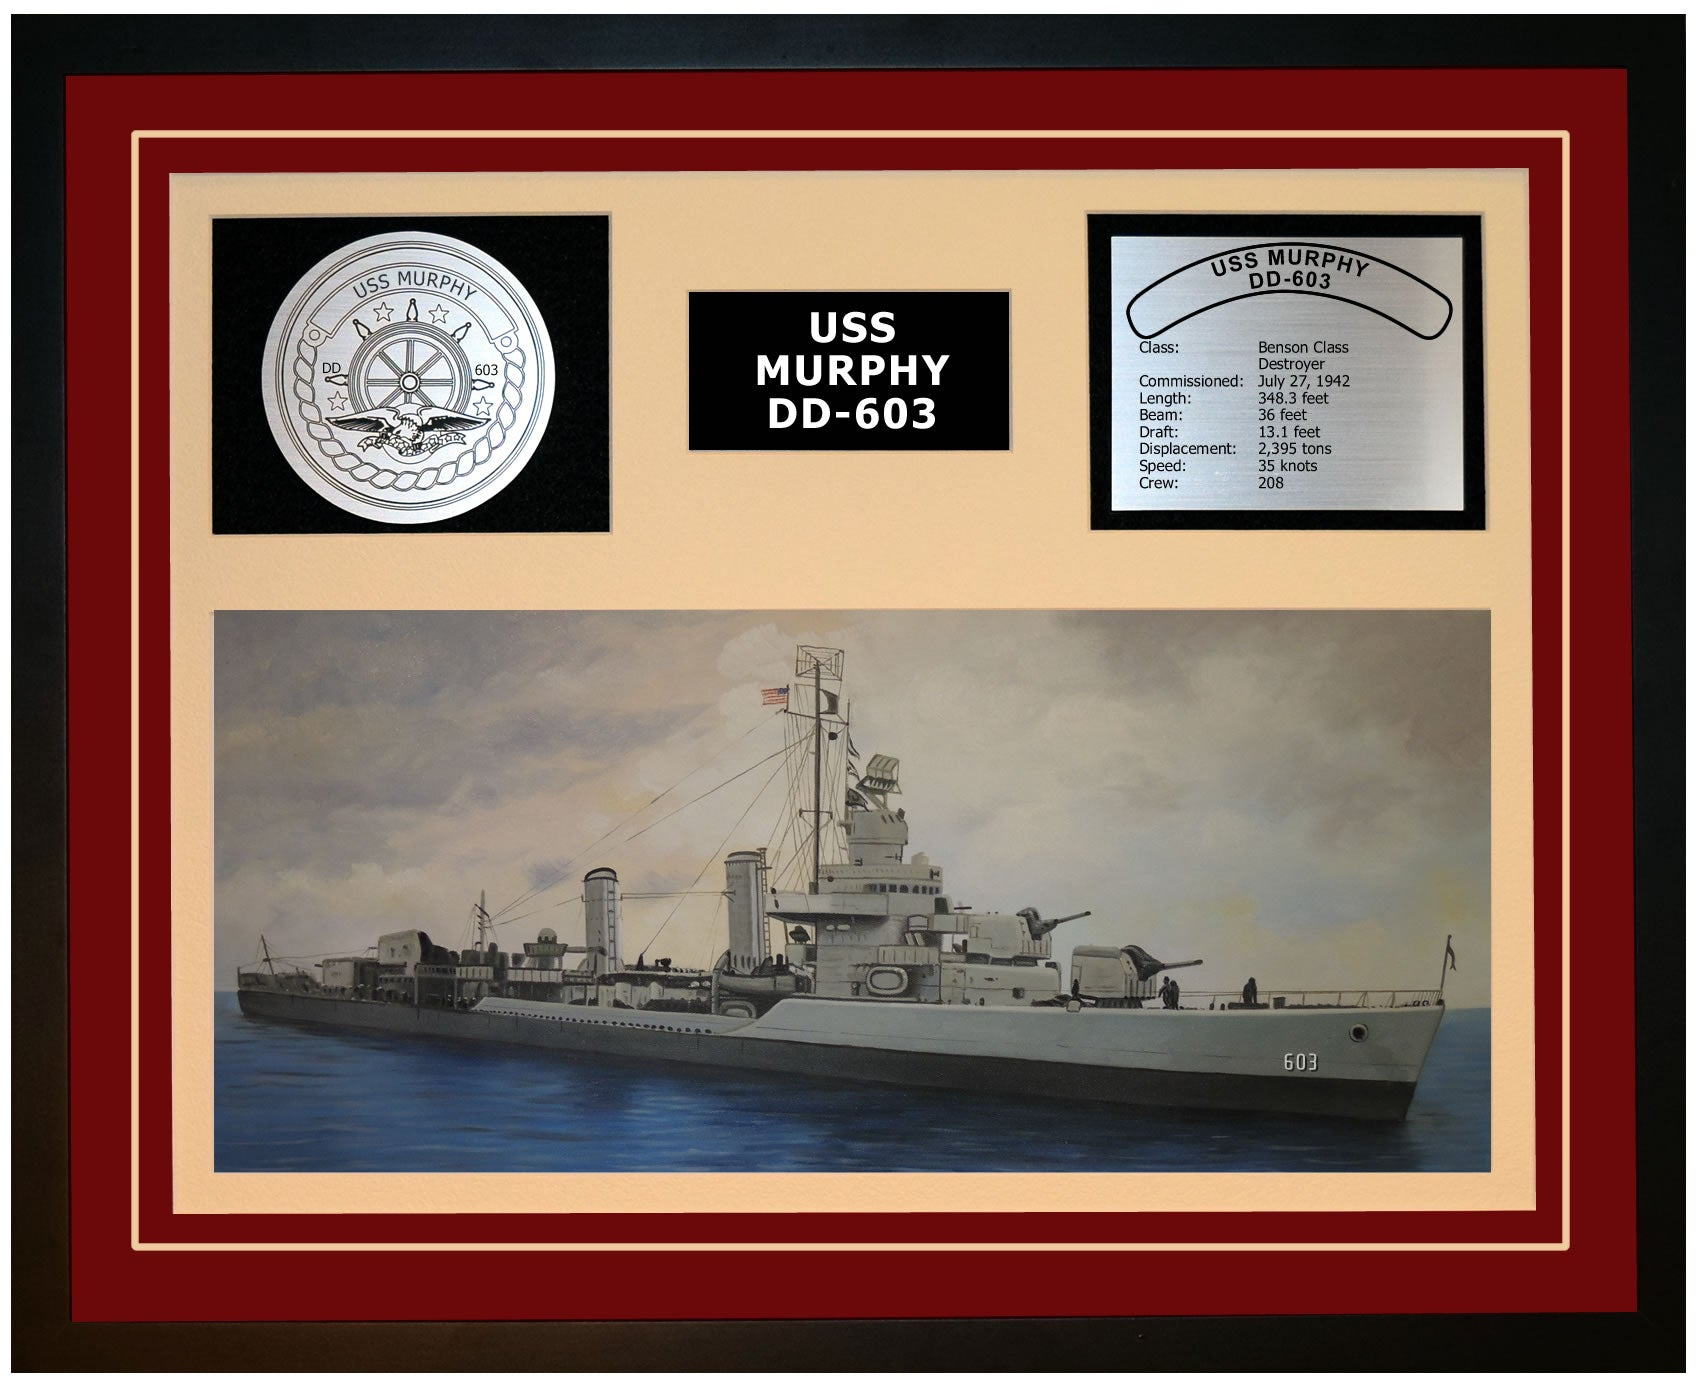 USS MURPHY DD-603 Framed Navy Ship Display Burgundy